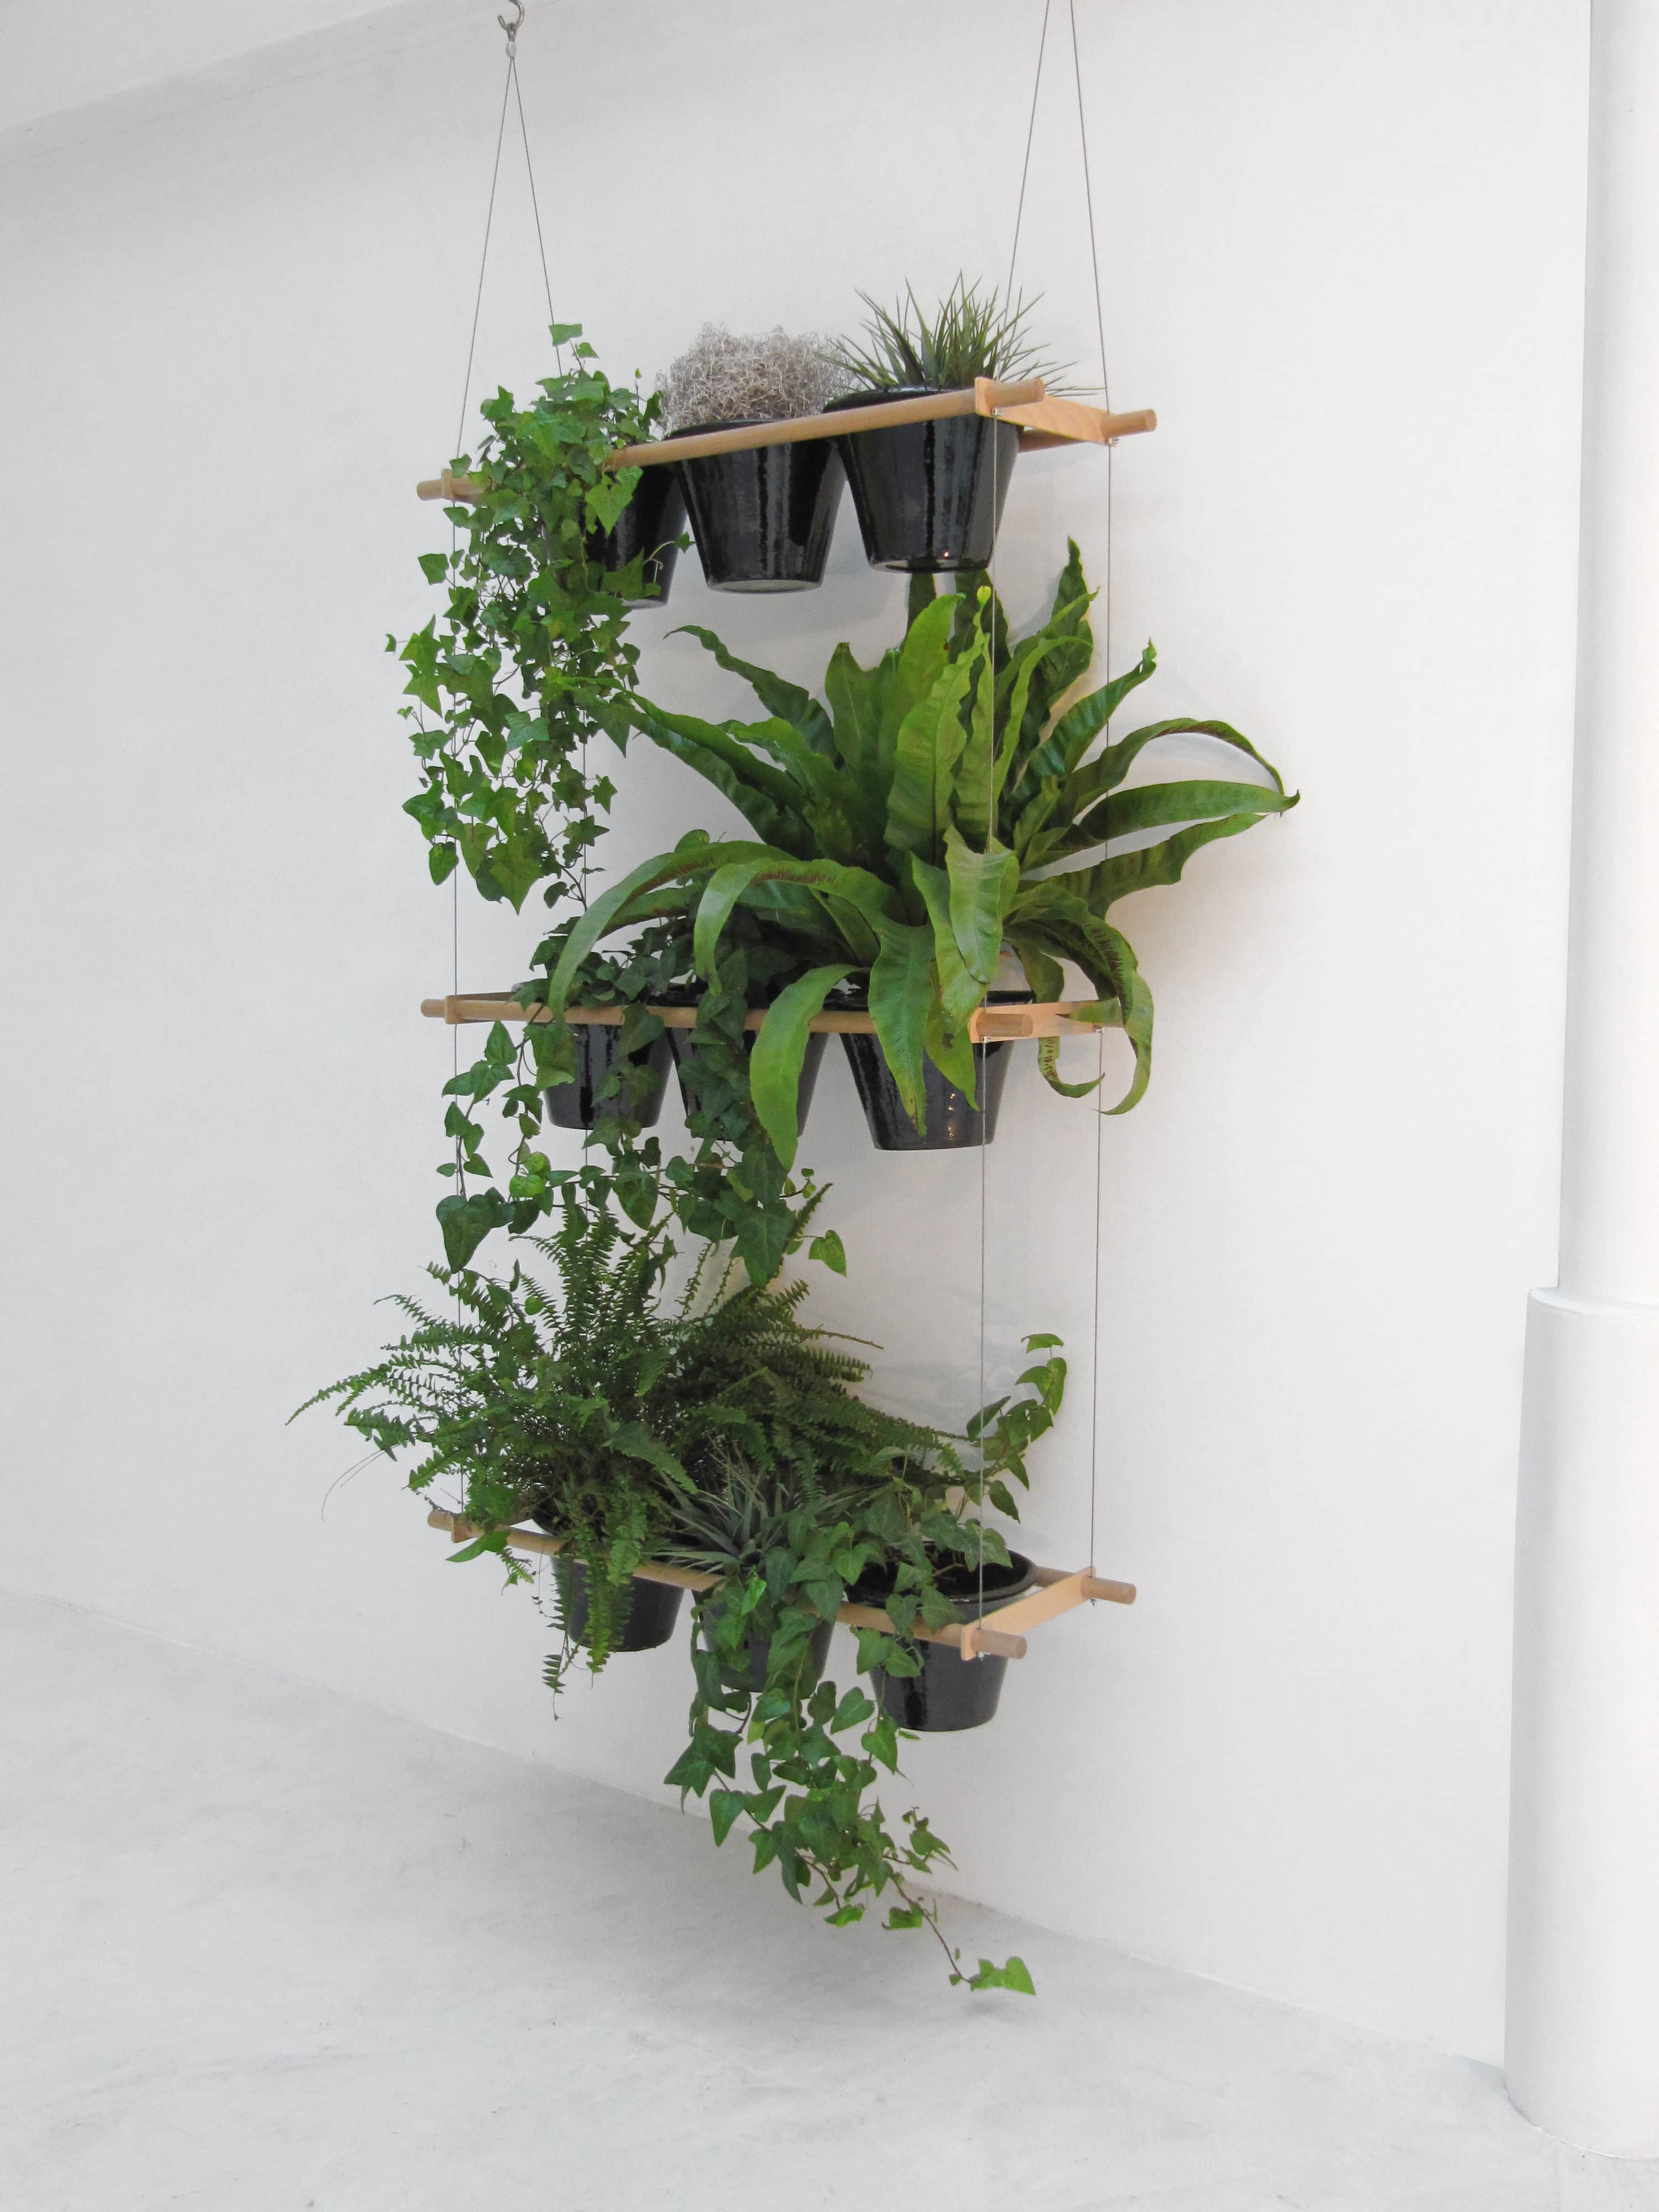 99 great ideas to display houseplants indoor plants decoration page 2 of 5 balcony garden web - Hangende zimmerpflanzen ...